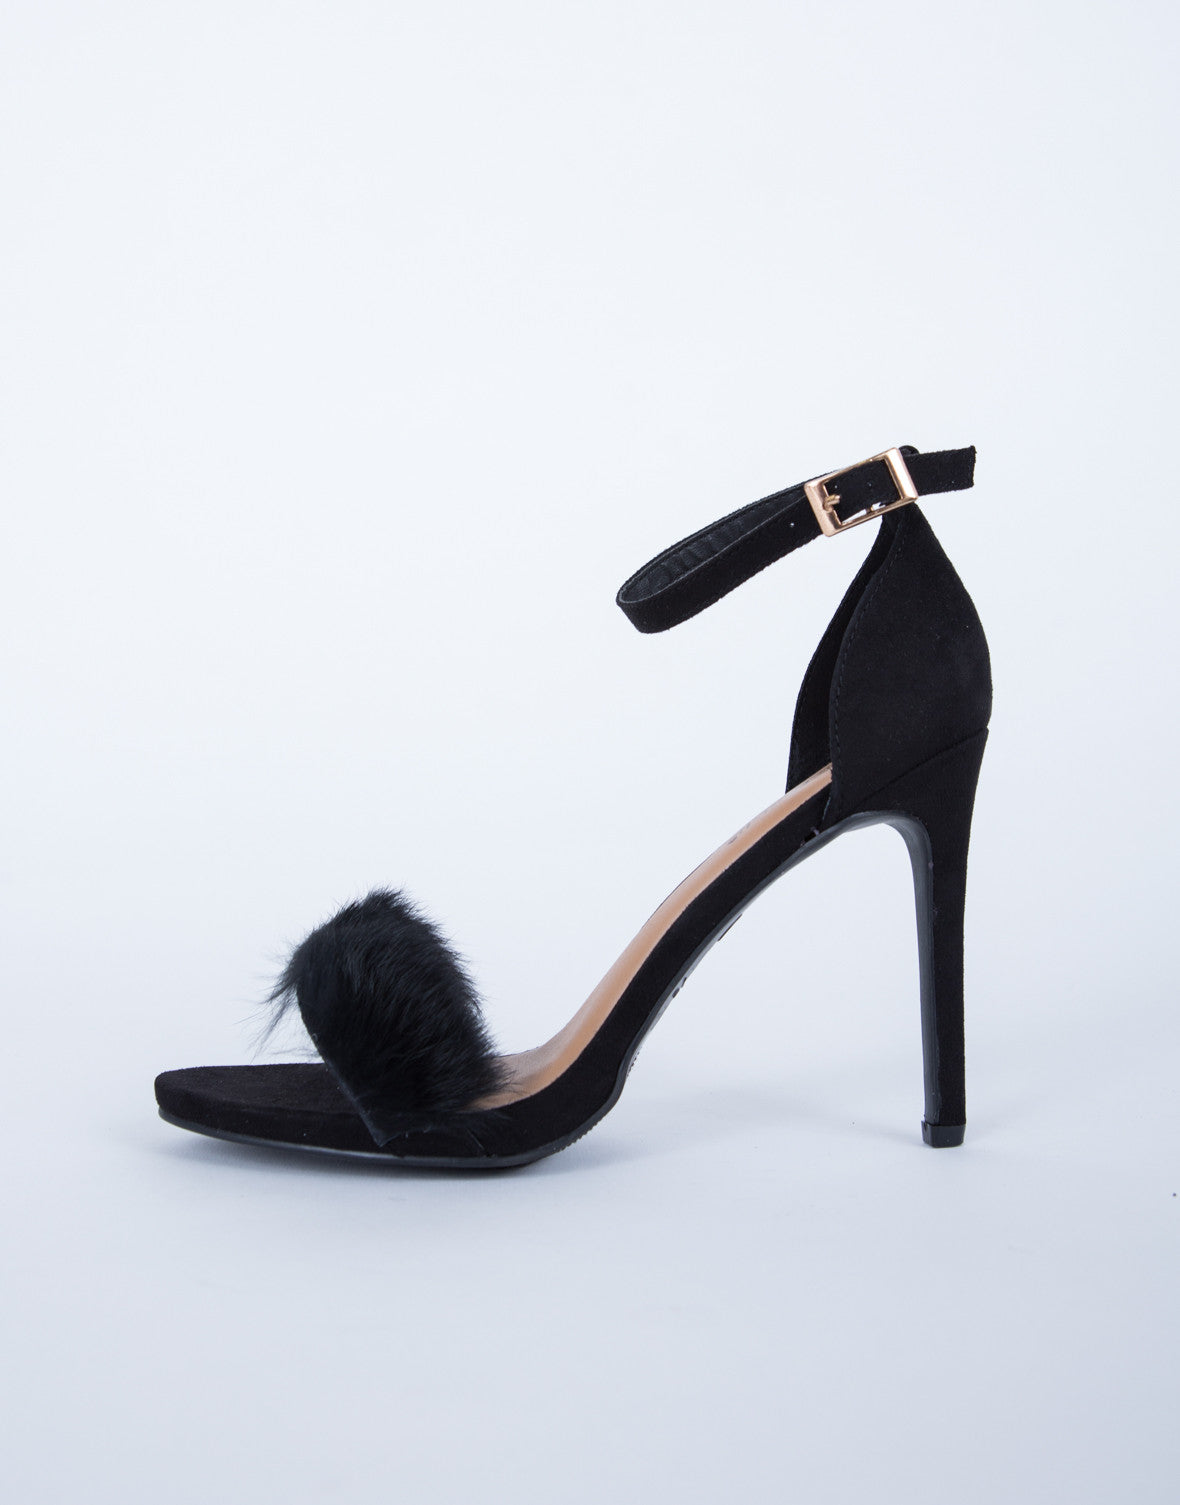 Furry Ankle Strapped Heels